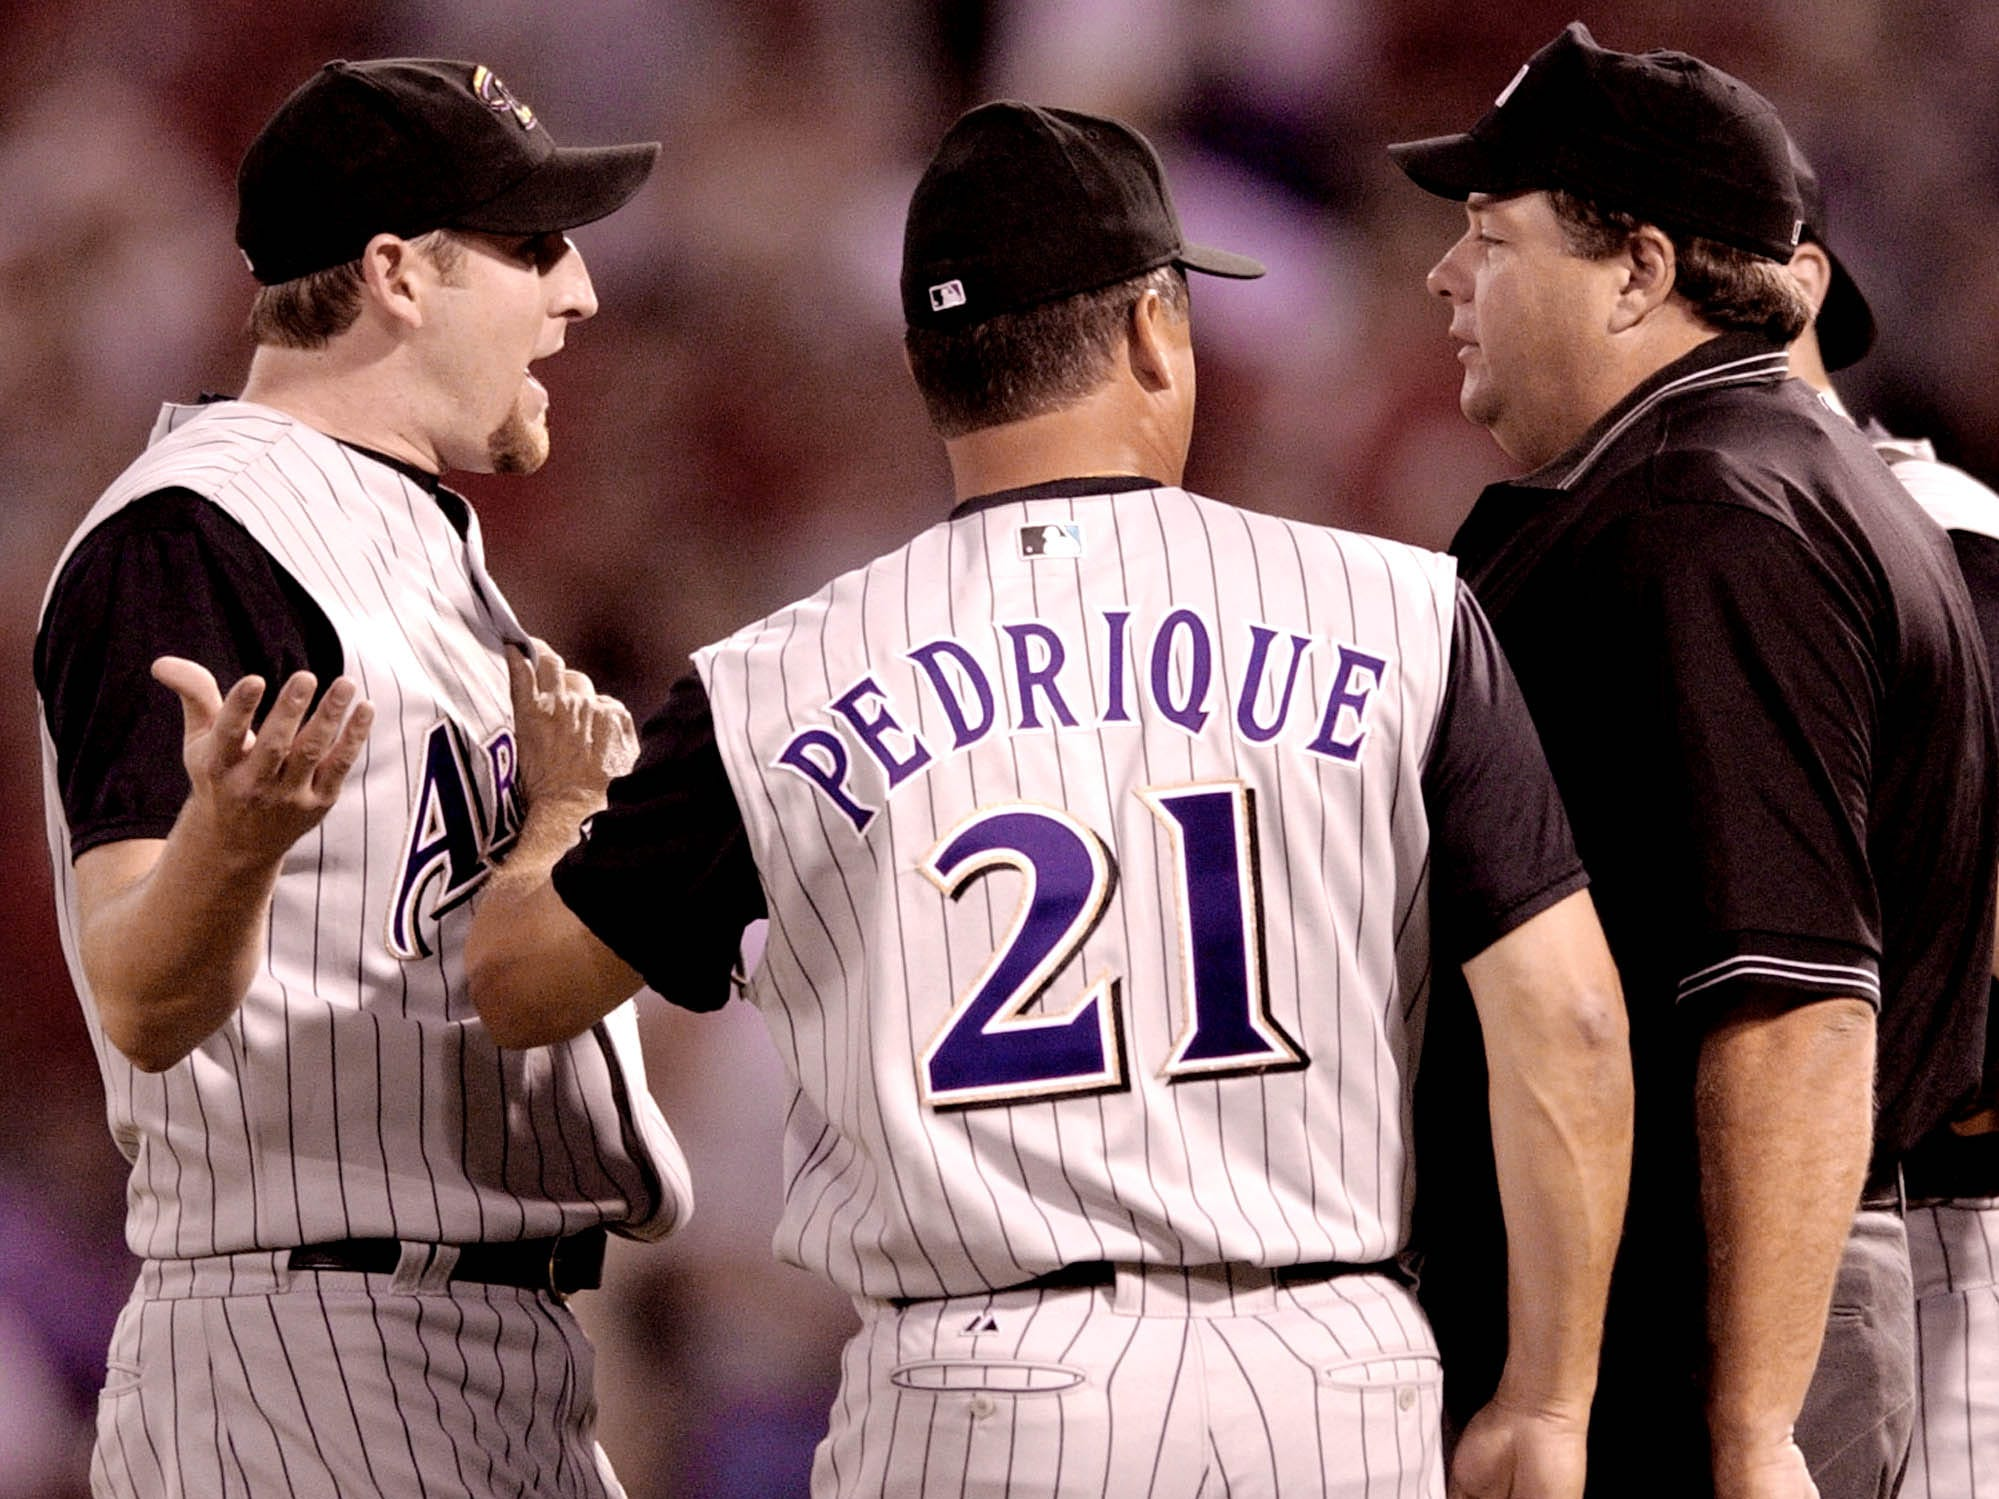 Arizona Diamondbacks starting pitcher Brandon Webb, left, is held back by his manager Al Pedrique during an arguement with home plate umpire Jerry Layne after Webb threw at St. Louis Woody Williams while he was at bat in the third inning in St. Louis,  Friday, Sept. 17, 2004. Webb was ejected and Pedrique was later ejected later in the third for arguing with the umpire.(AP Photo/James A. Finley)